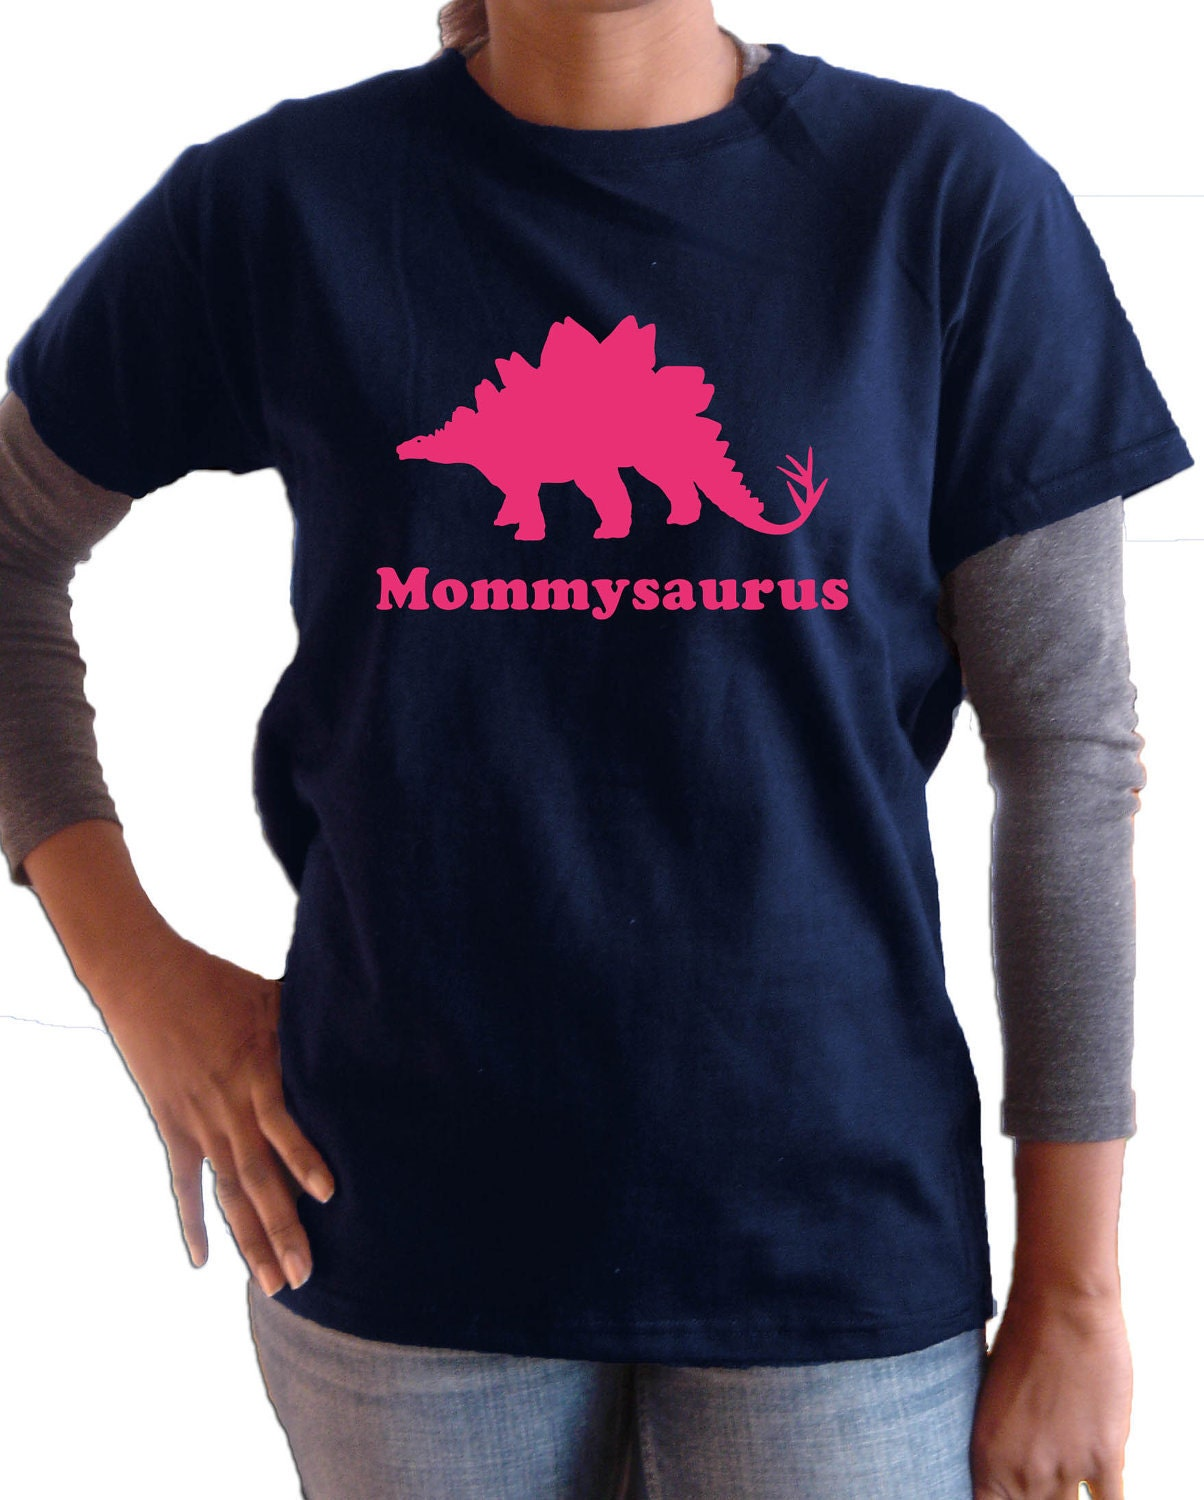 Shop newuz.tk for the best collection of original, unique and funny dinosaur t-shirts, hoodies, and tank tops for men, women and kids. Ships fast and makes great gifts! JavaScript seems to be disabled in your browser.